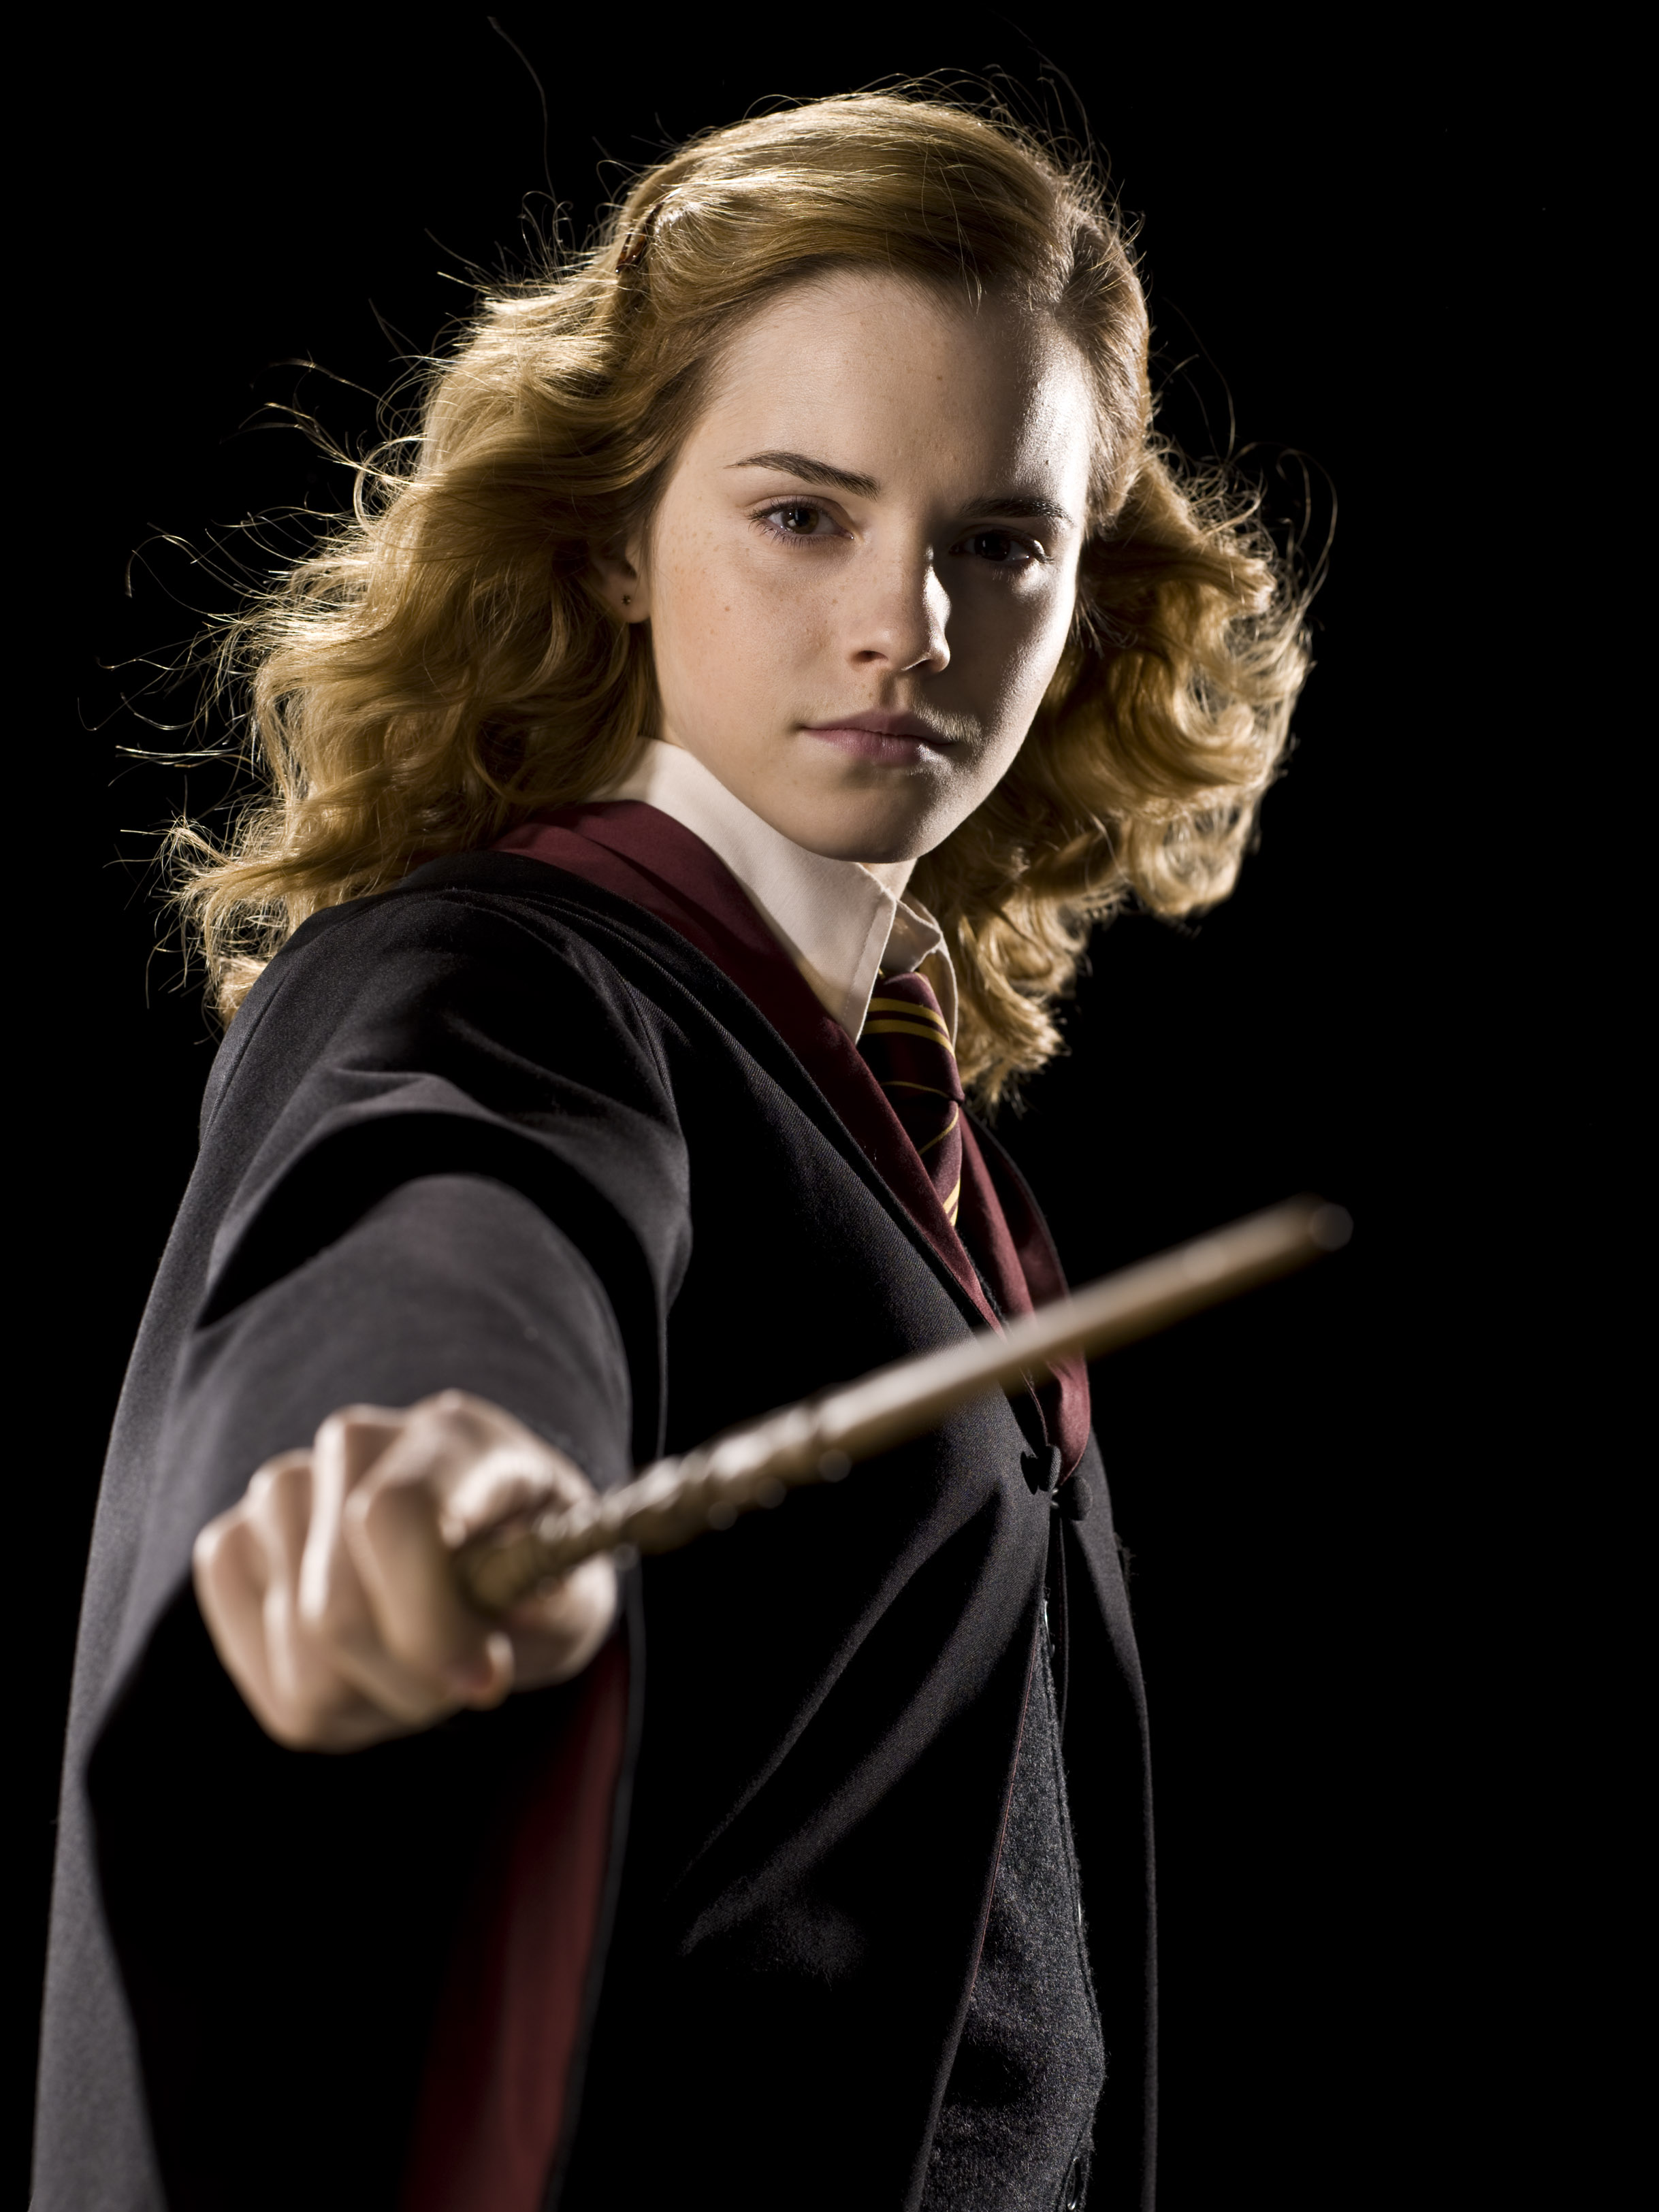 Hermione Granger from Harry Potter.